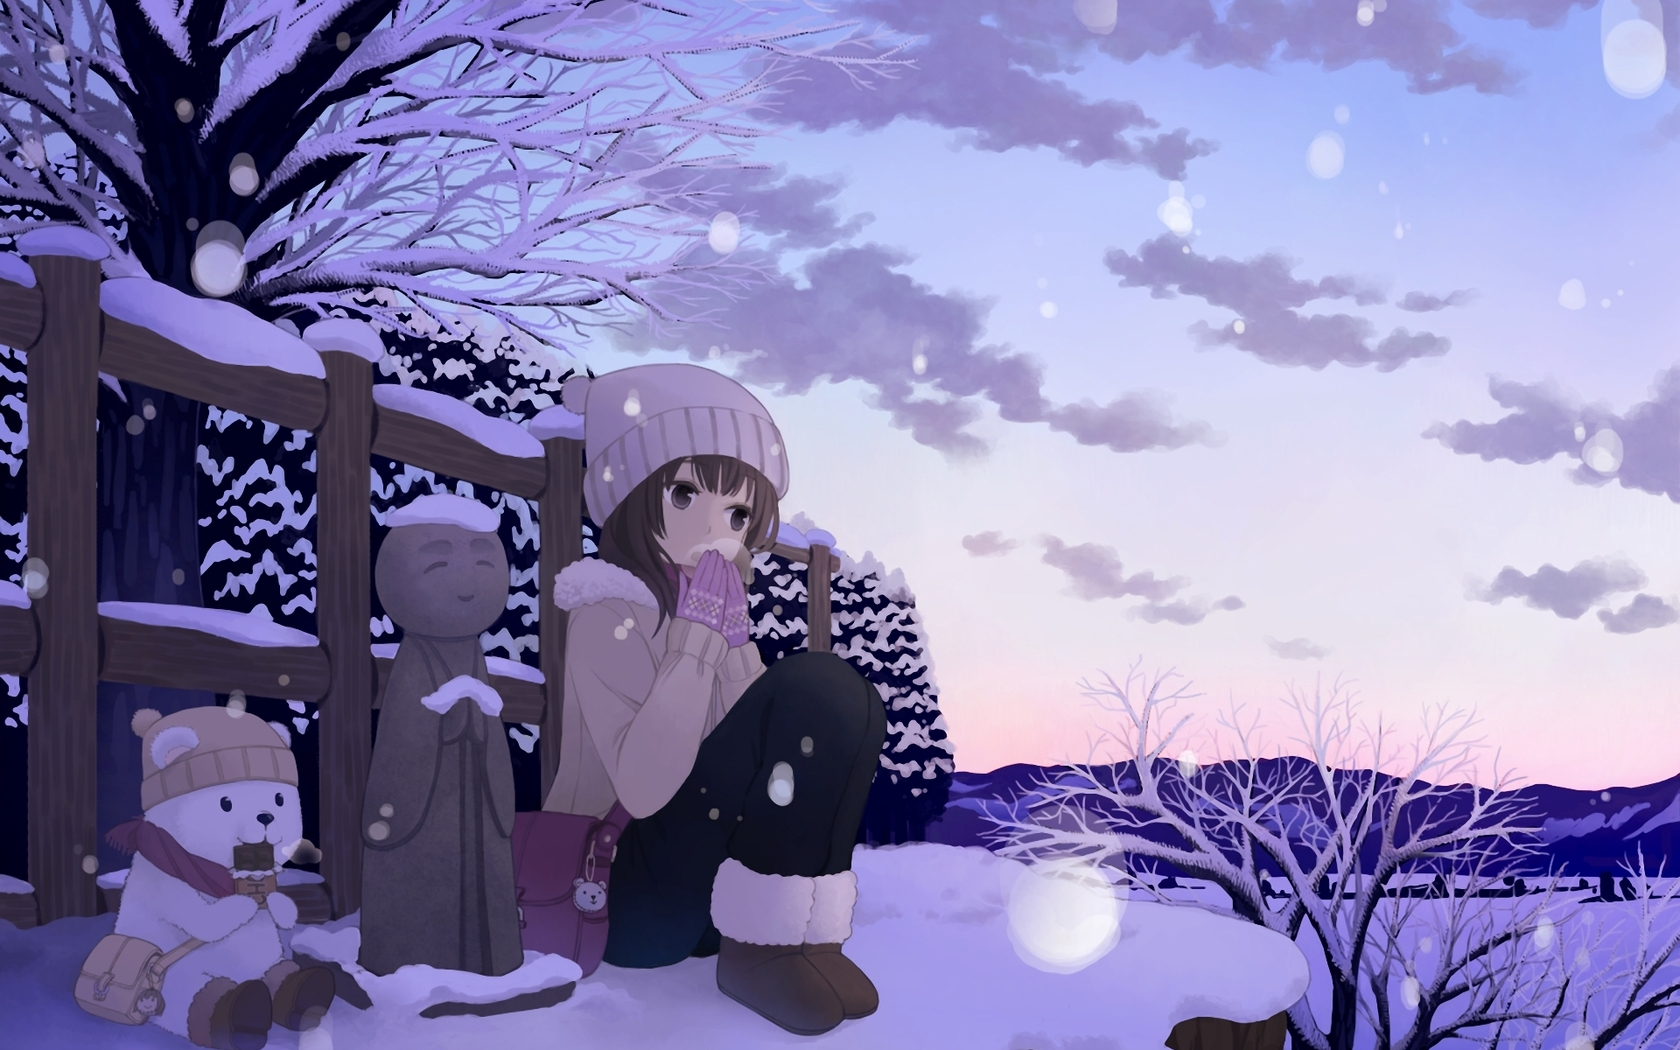 Anime Winter Wallpaper 42573 1680x1050 px ~ HDWallSource.com